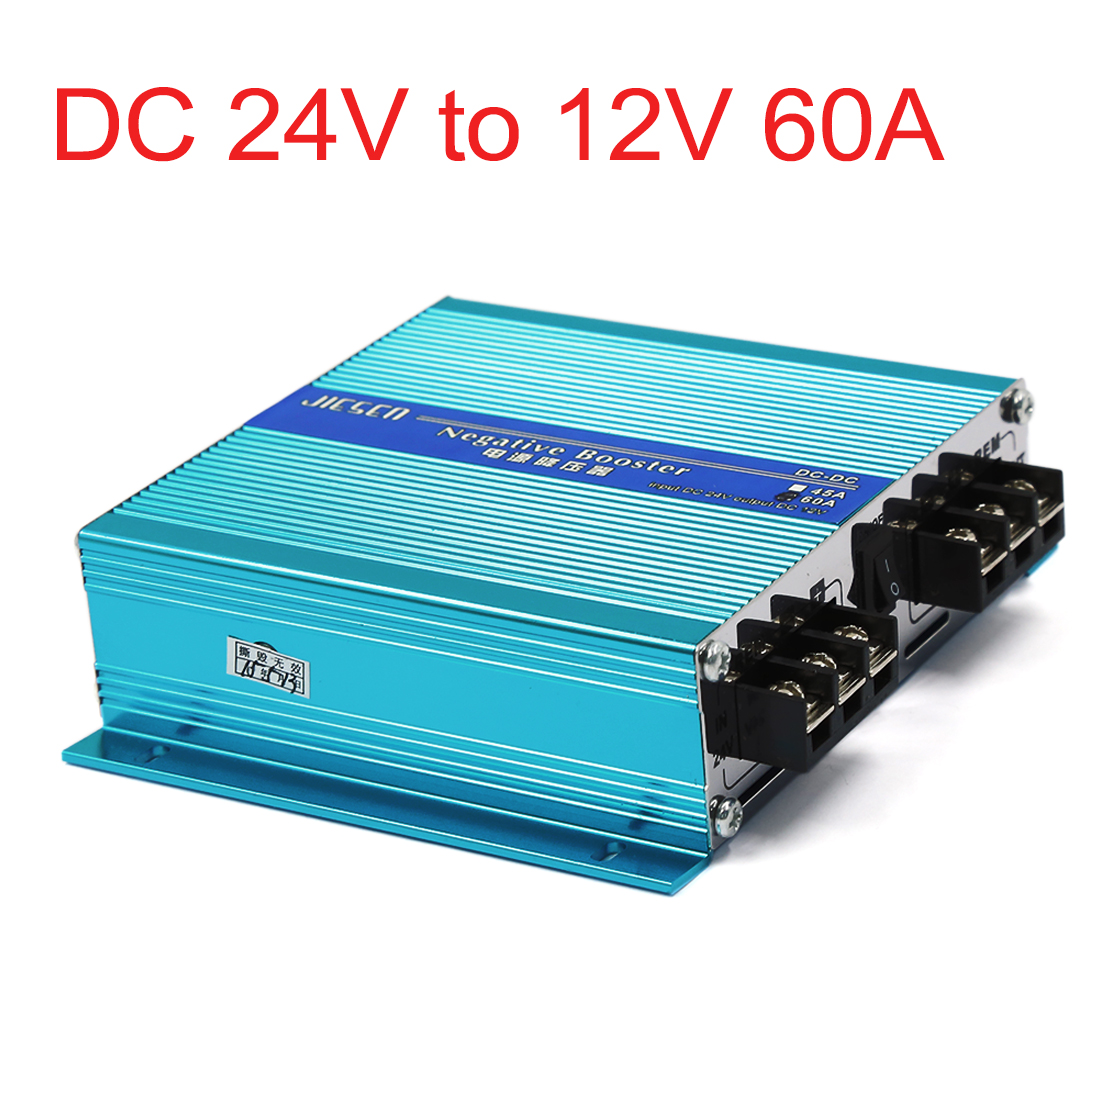 Blue Metal DC 24V to 12V 60A Vehicle Car Power Supply Transformer Converter